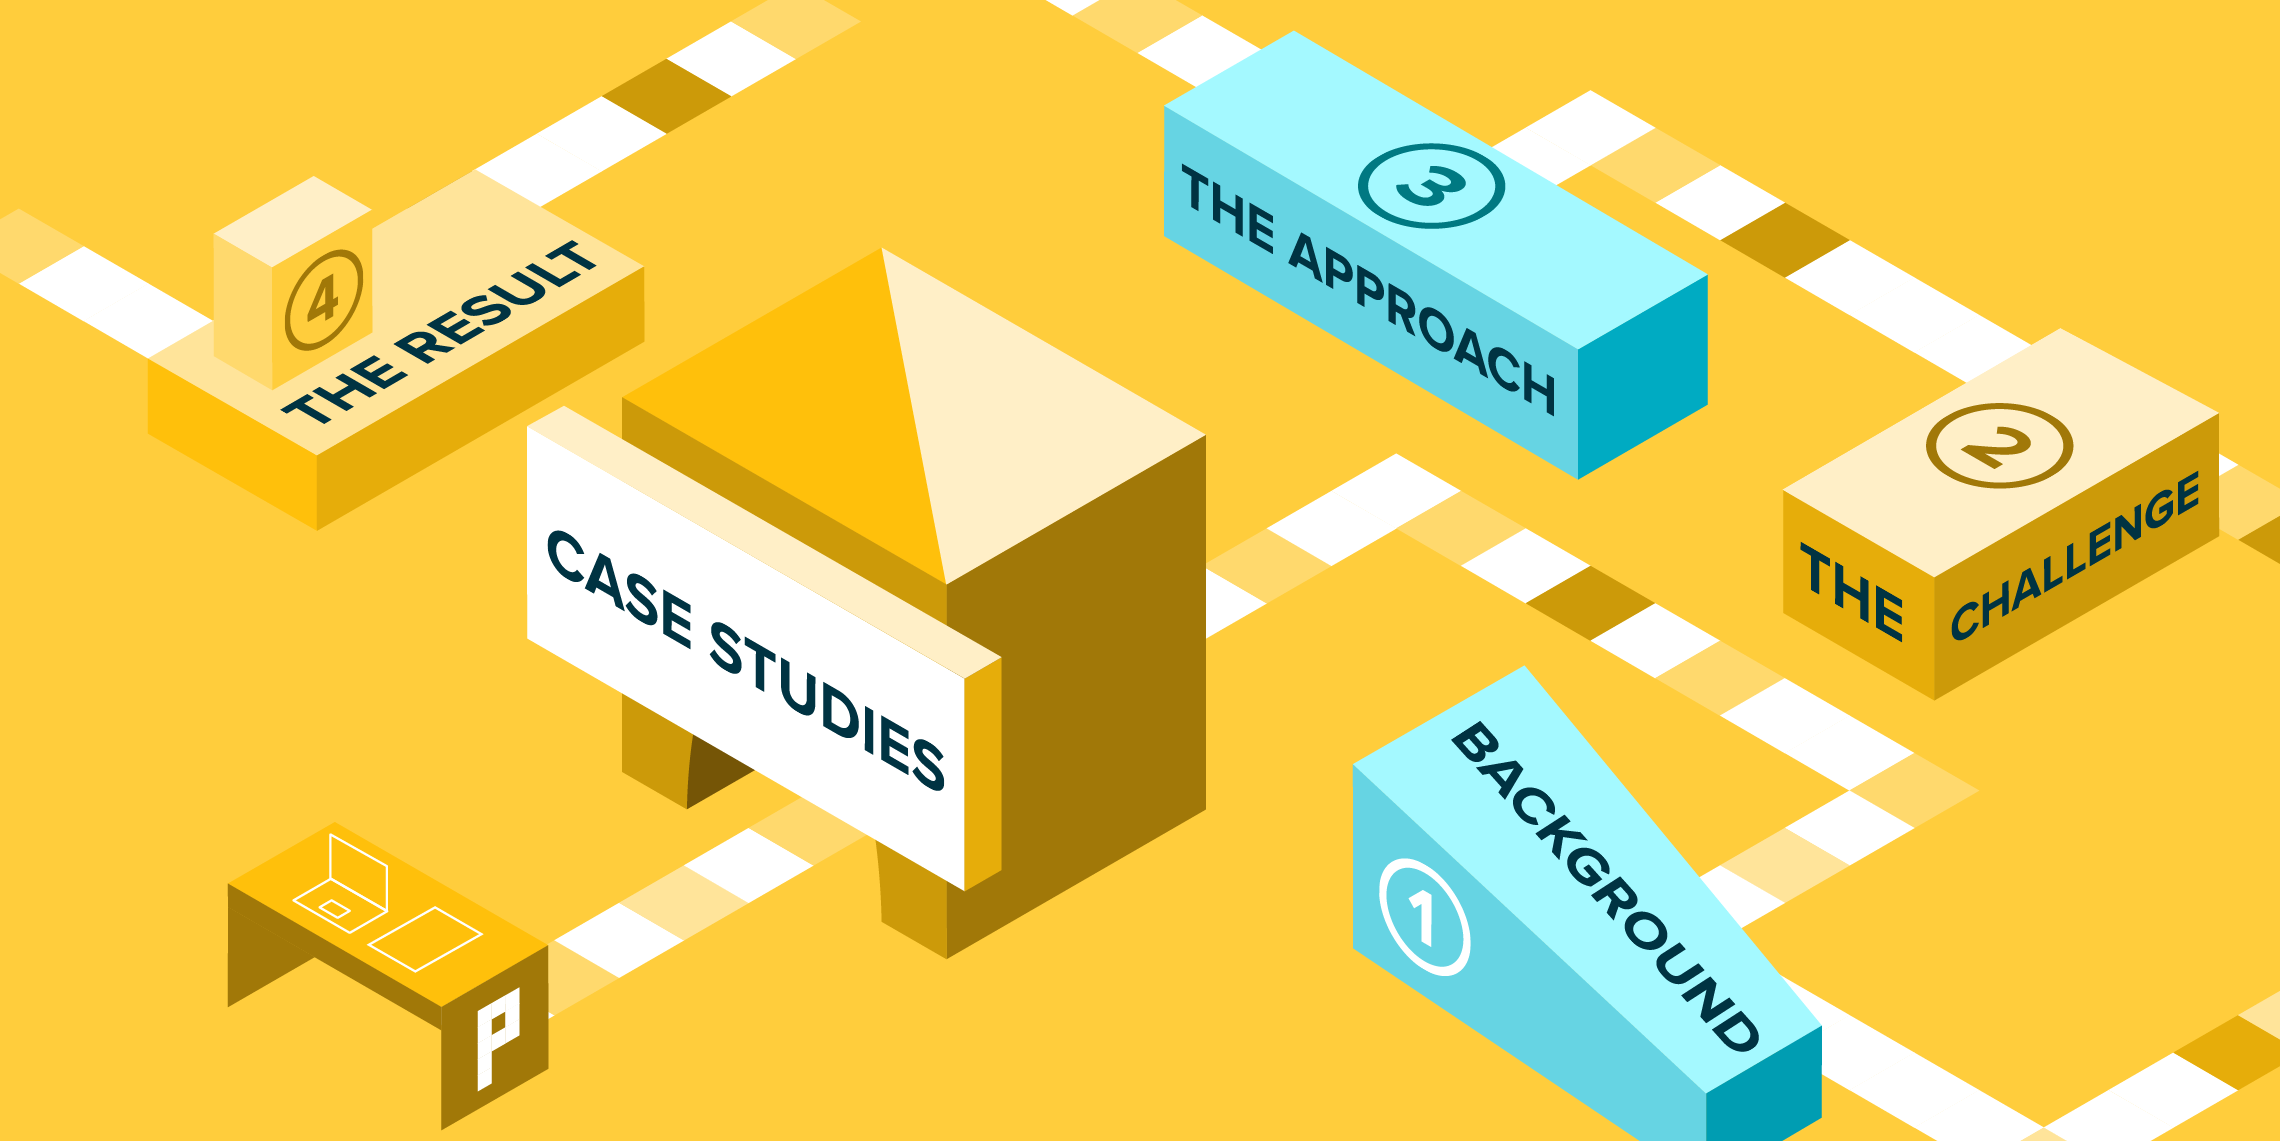 structure proposals with case studies